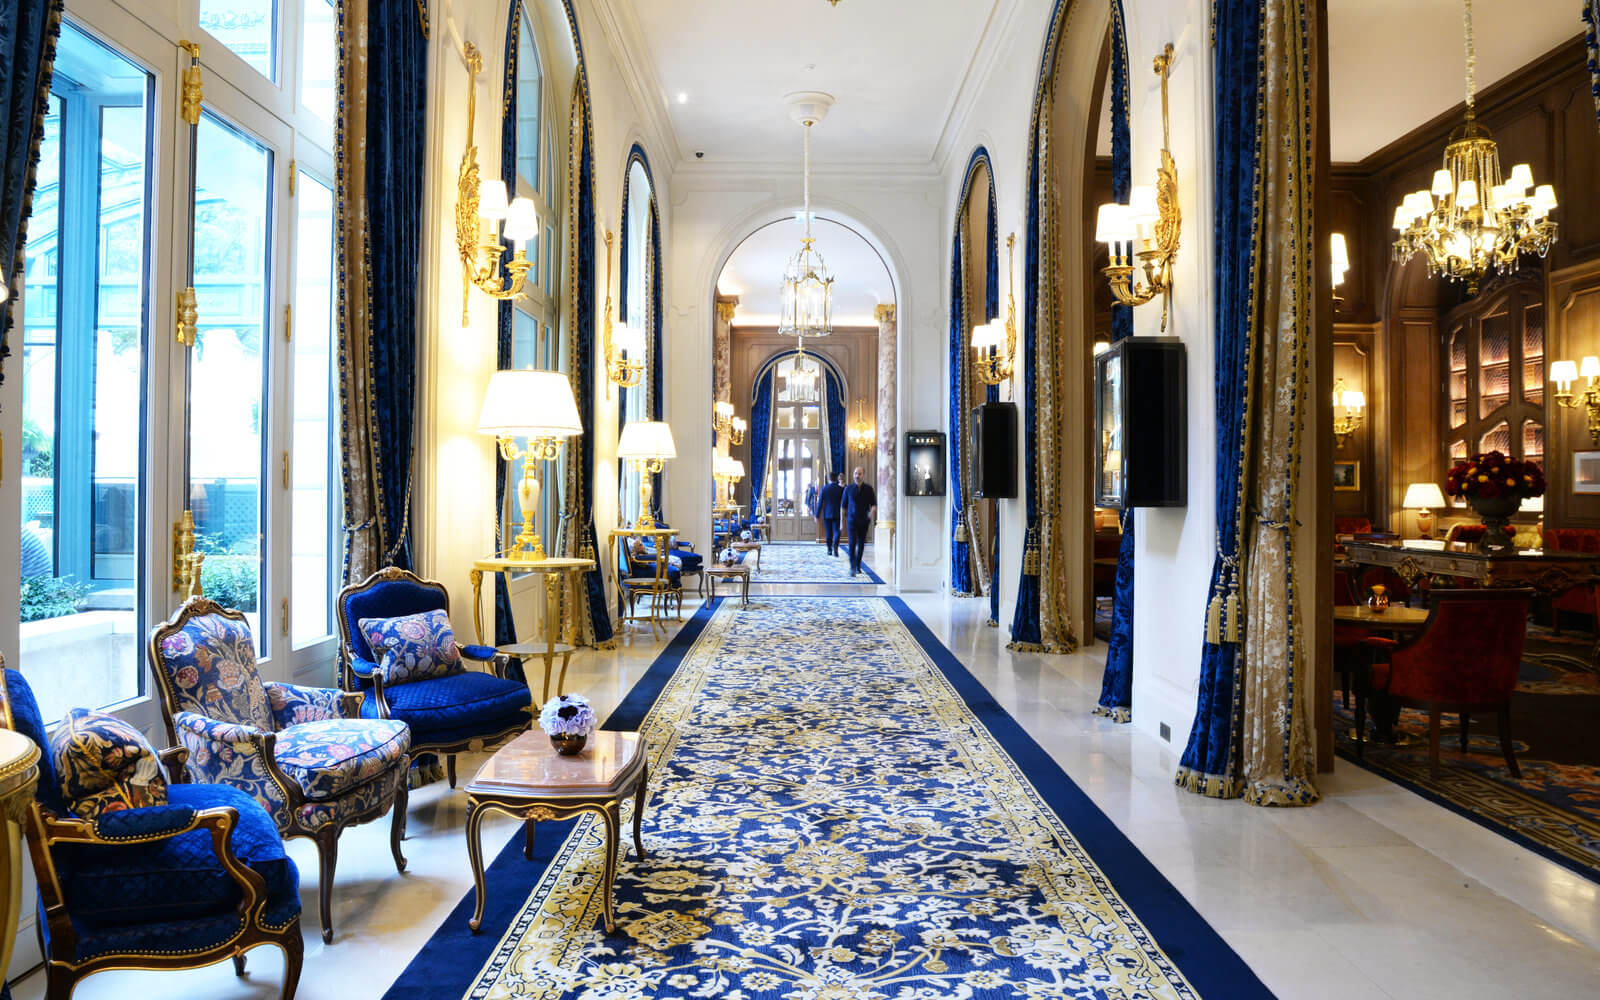 Hall of Ritz hotel in Paris